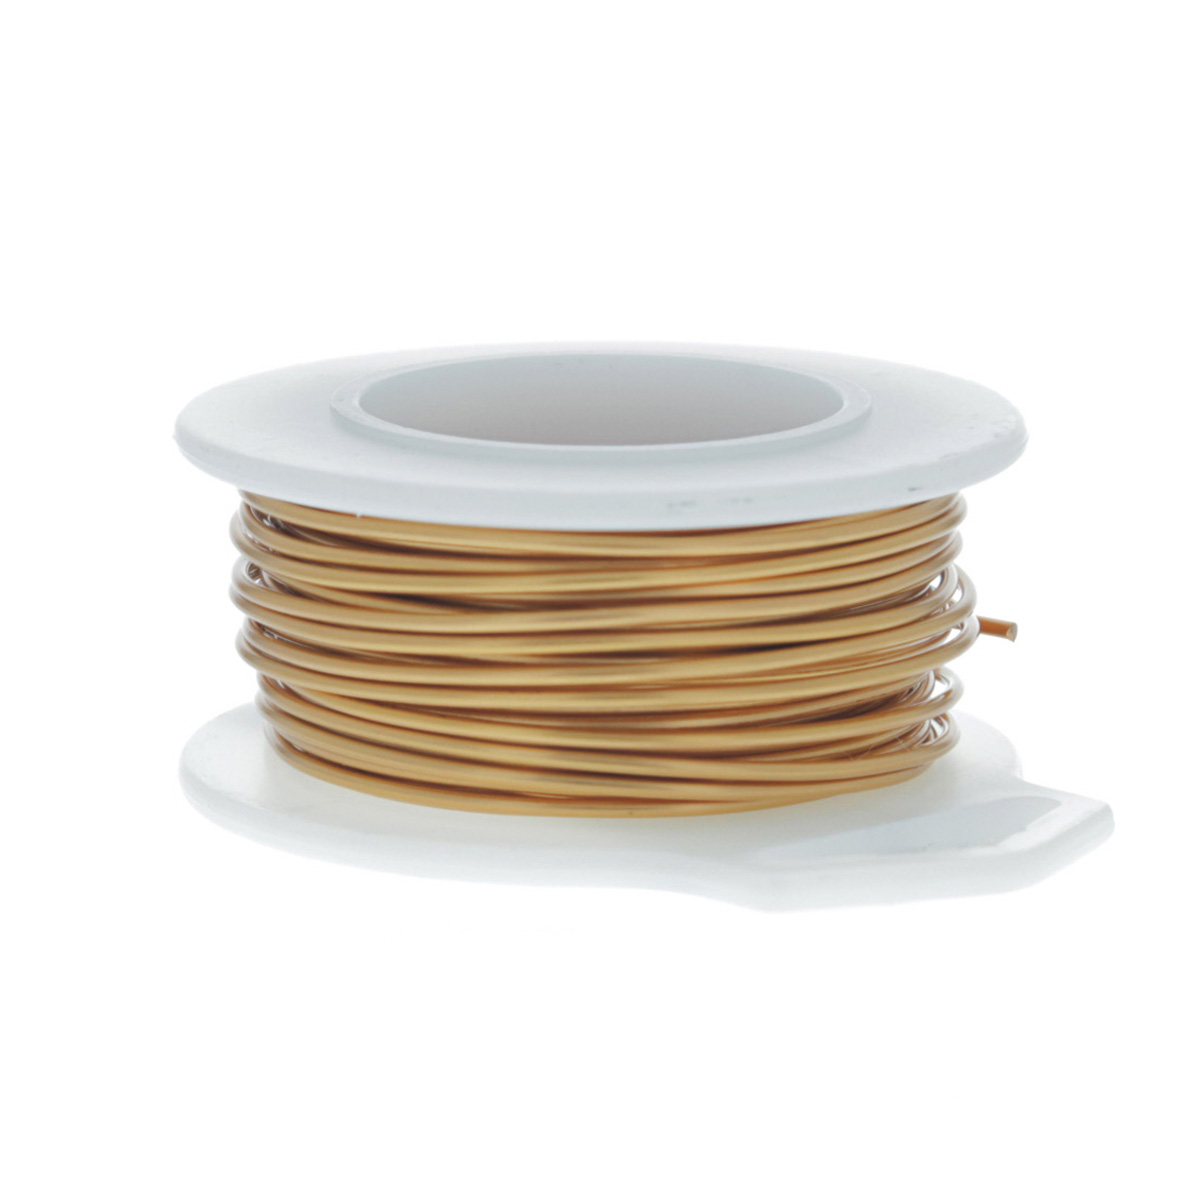 20 Gauge Round Bronze Enameled Craft Wire - 30 ft